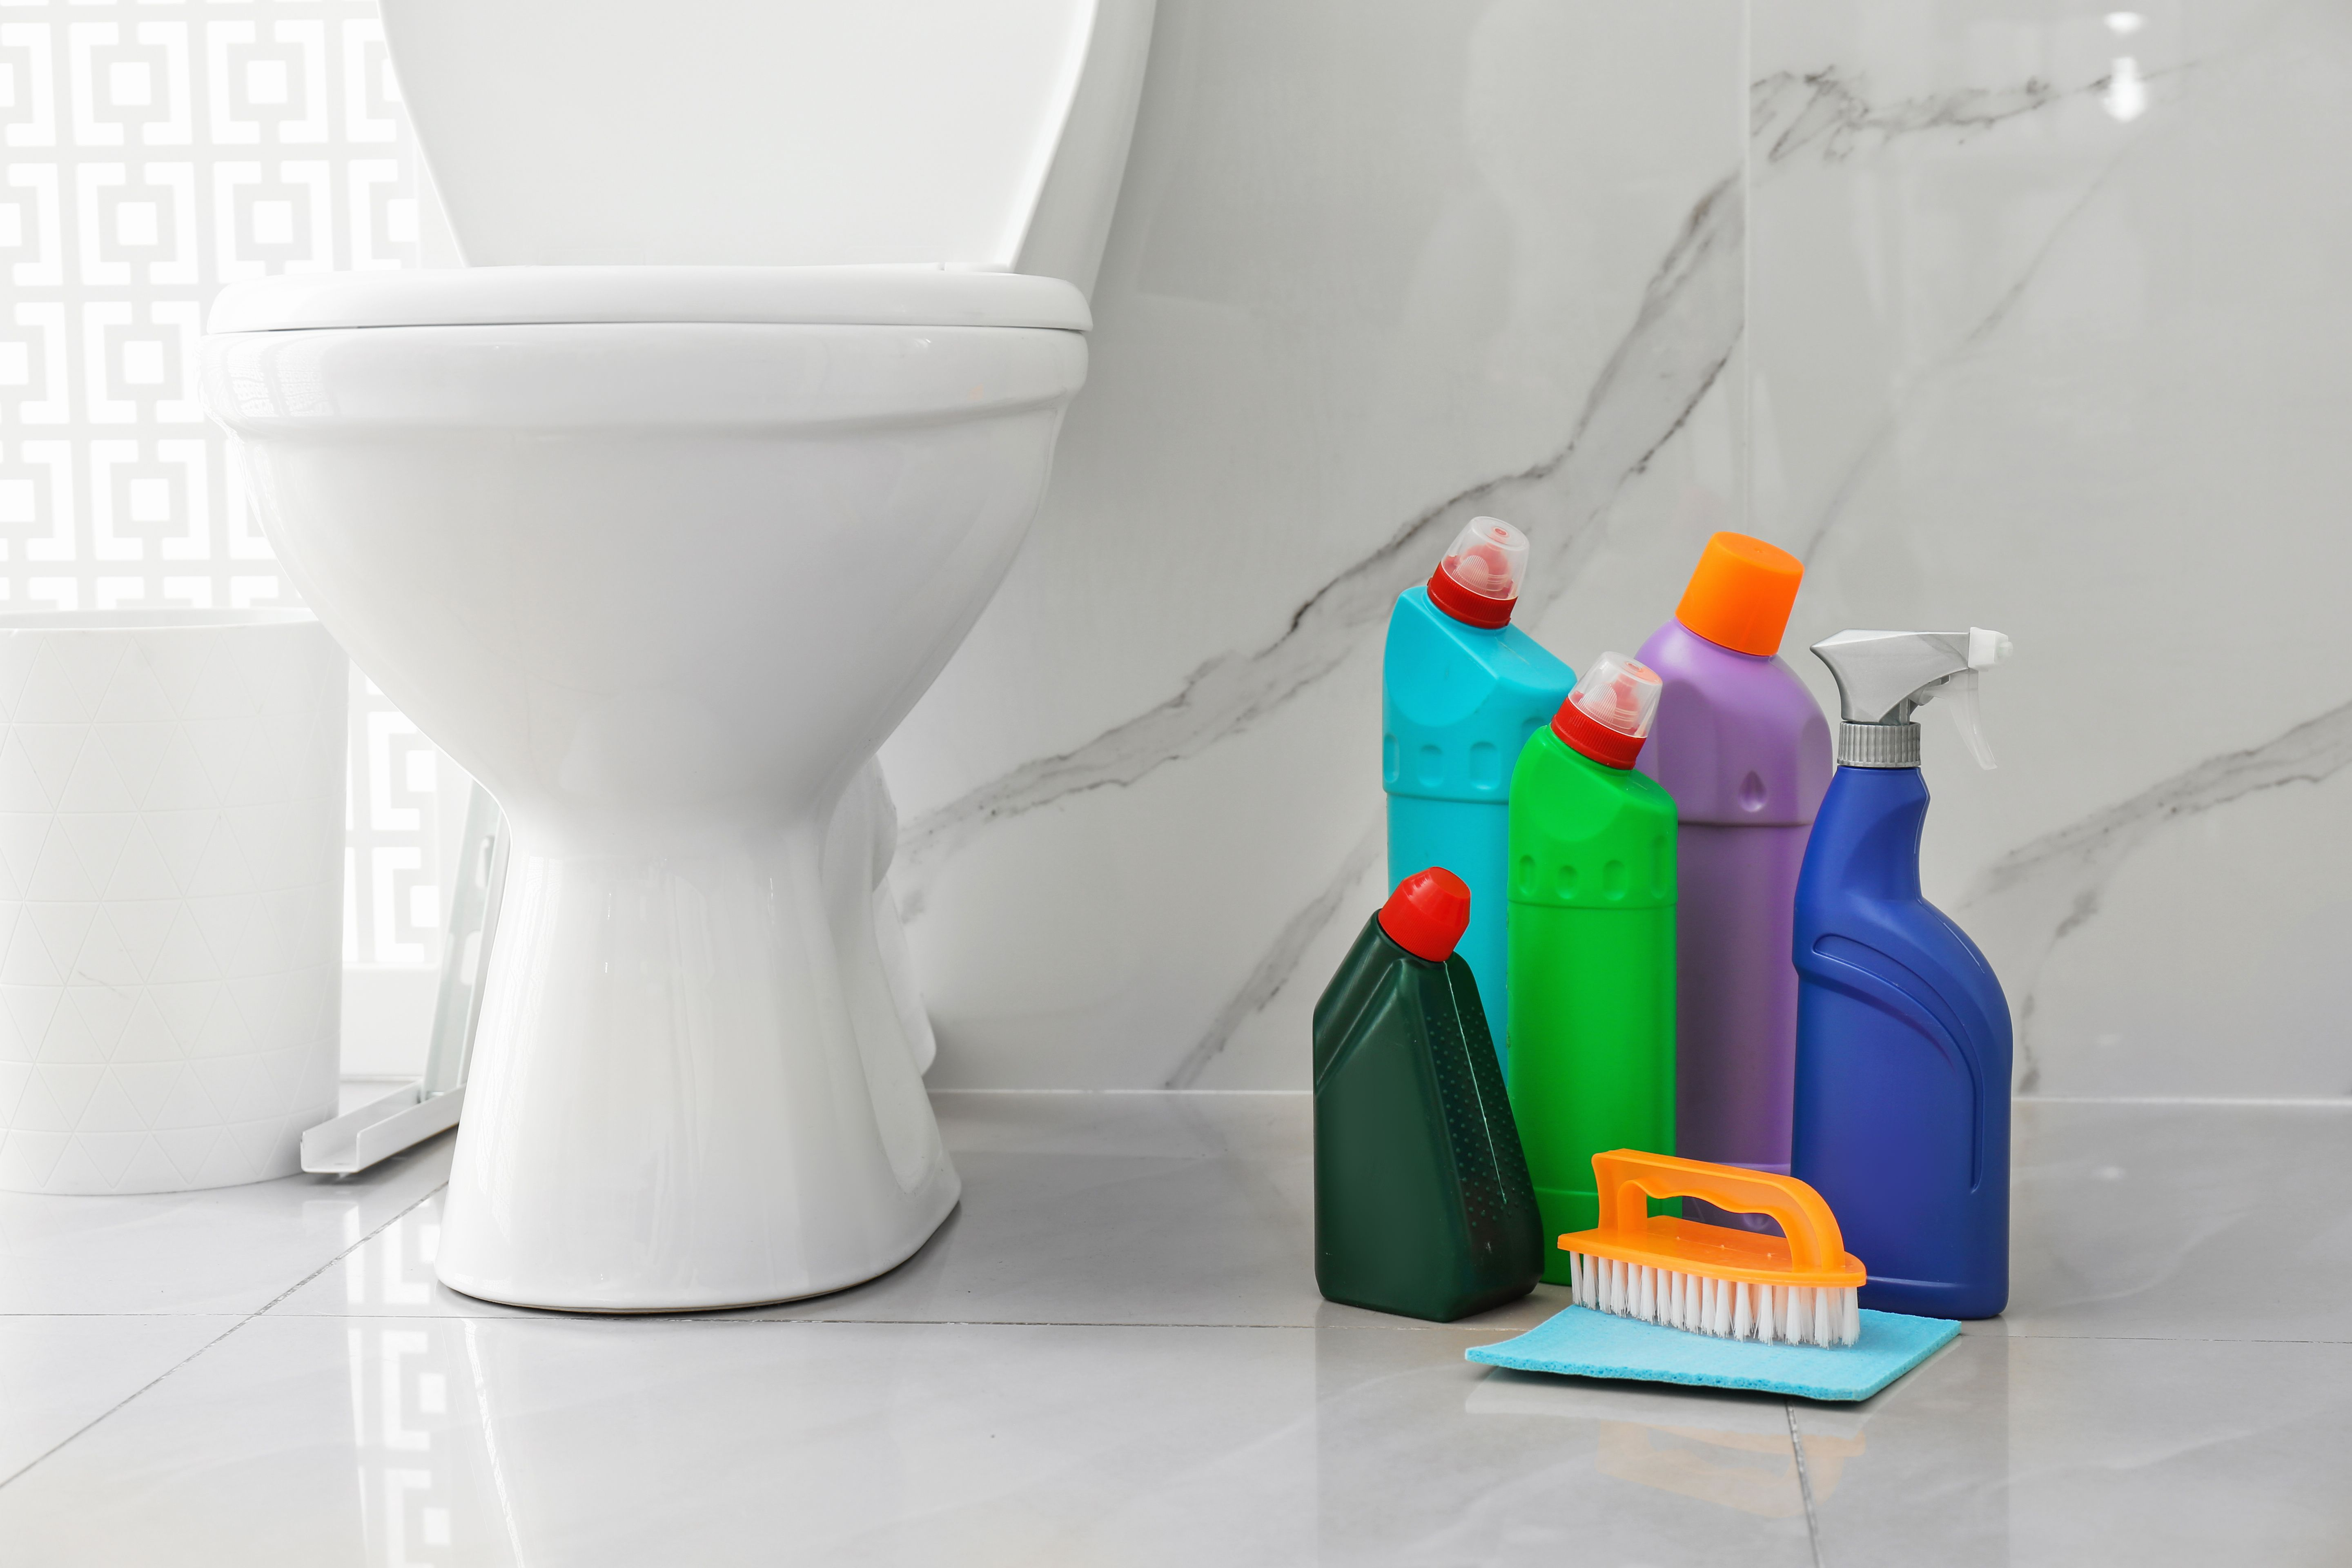 Detergents and cleaning supplies for bathroom cleaning